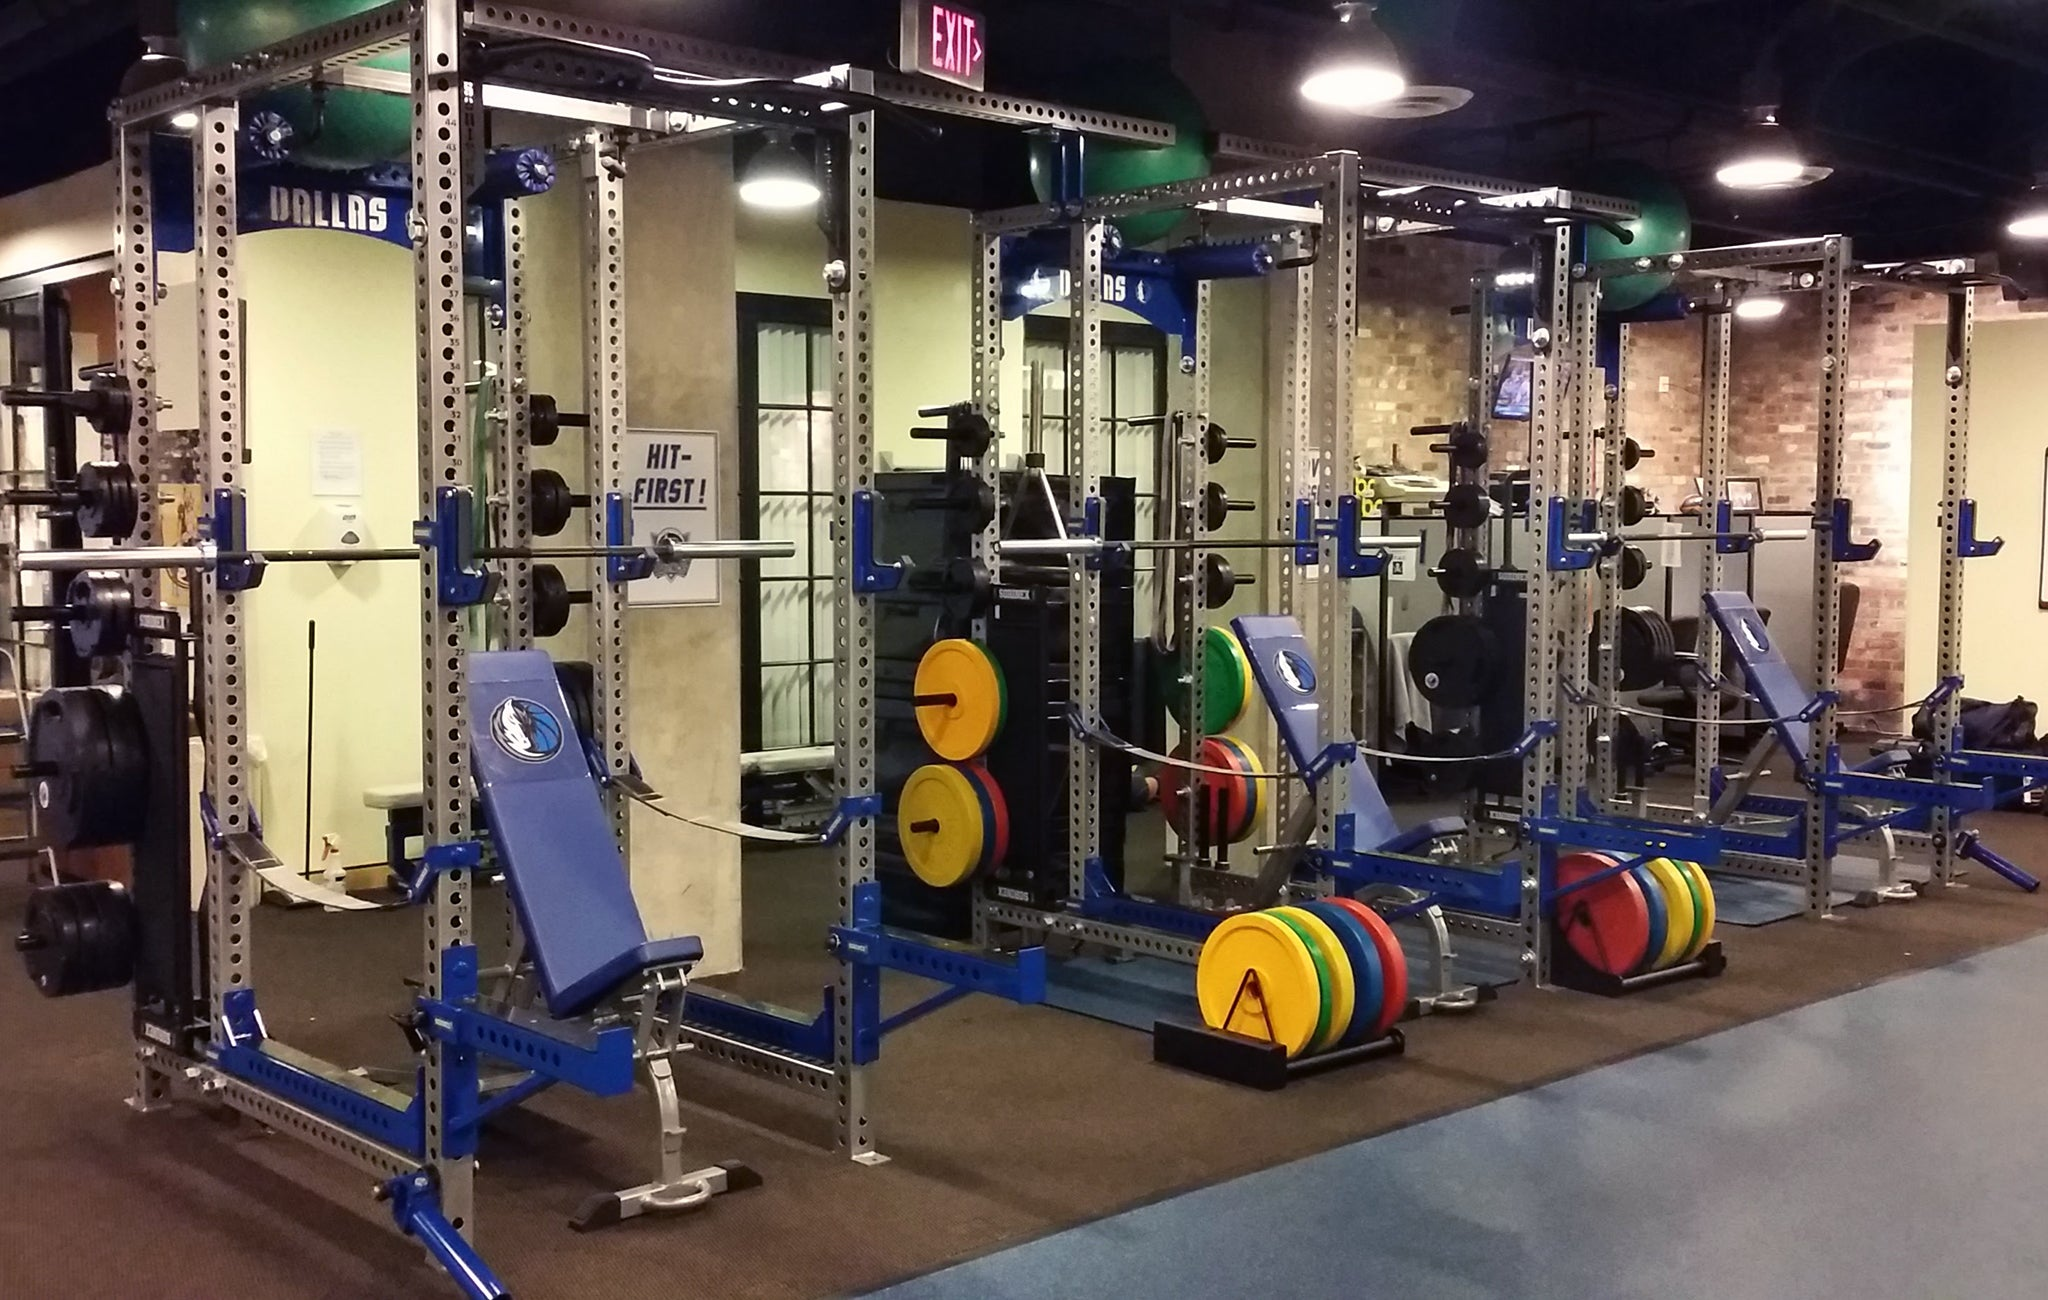 Dallas Mavericks Weight Room